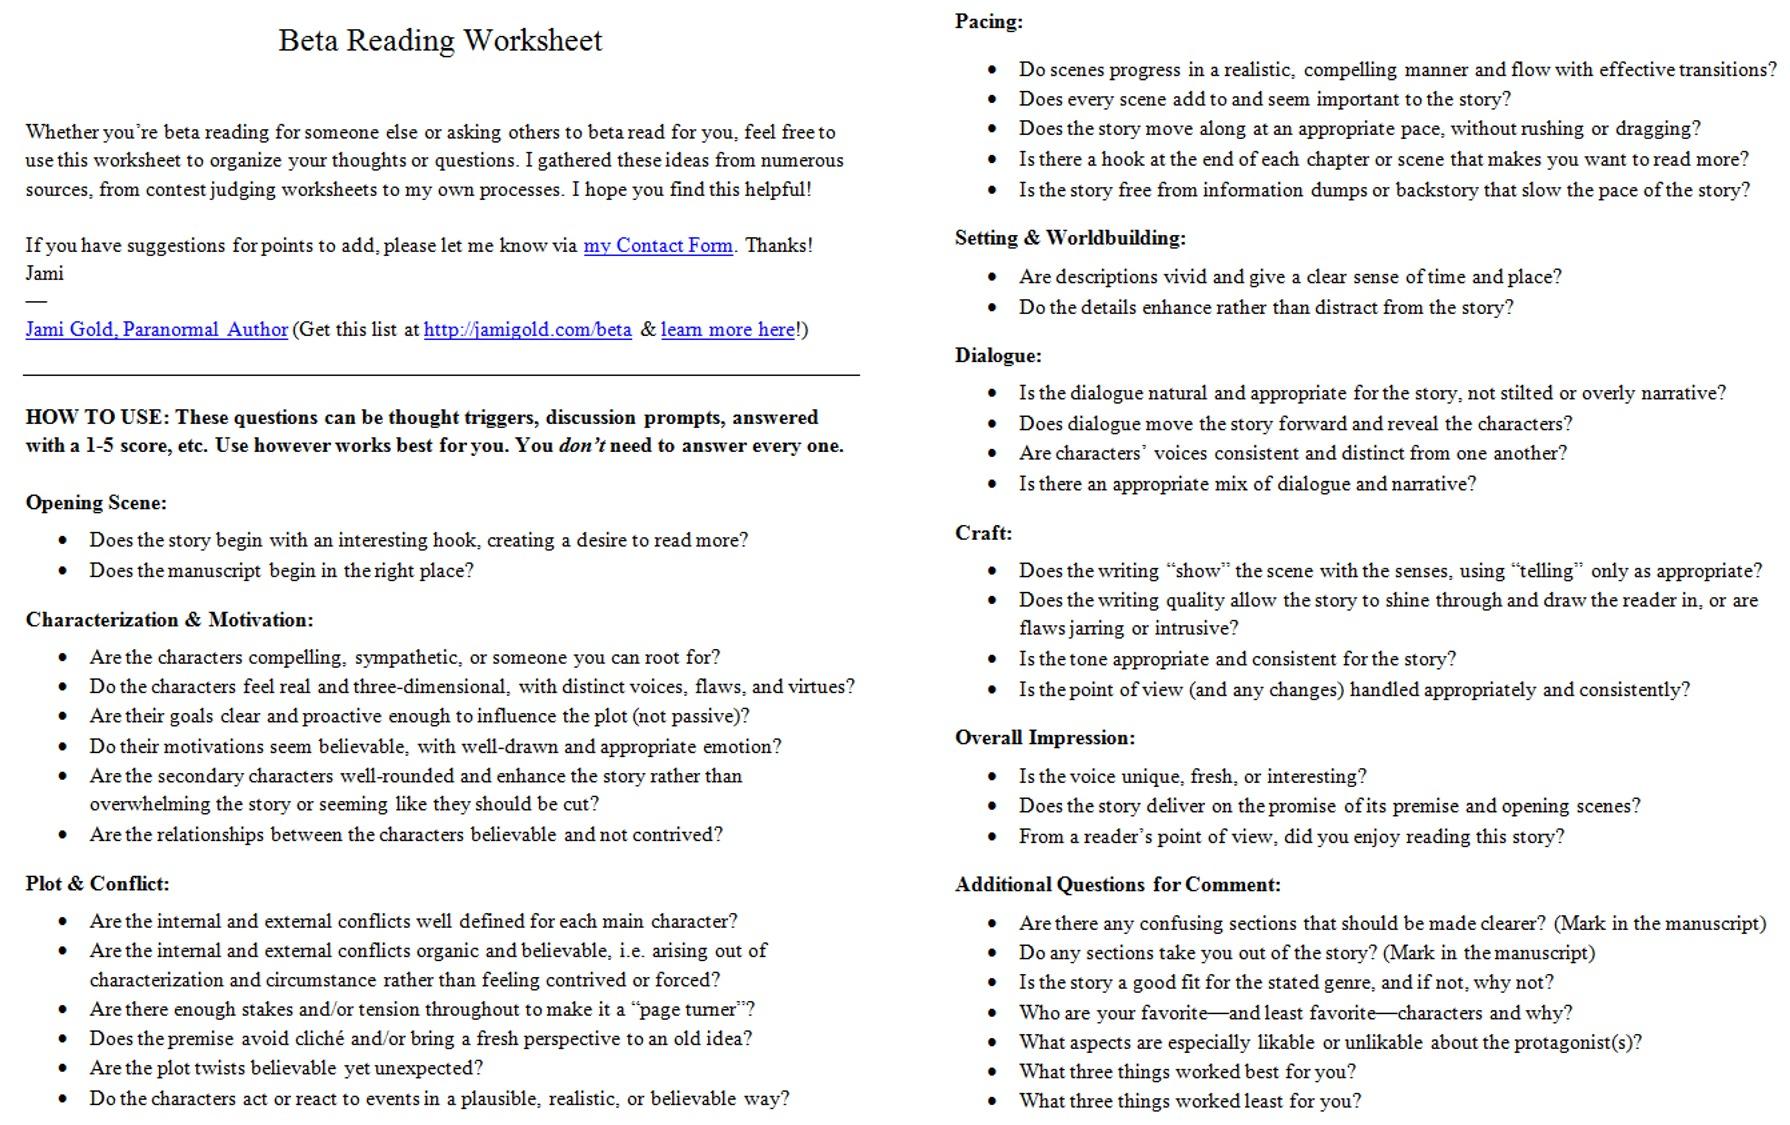 Aldiablosus  Terrific Worksheets For Writers  Jami Gold Paranormal Author With Likable Screen Shot Of The Twopage Beta Reading Worksheet With Astounding Multiplying Integers Worksheets Also Chemistry Scientific Notation Worksheet In Addition Parts Of A Computer Worksheet And Quartiles Worksheet As Well As Inverse Worksheet Additionally Question Words In French Worksheets From Jamigoldcom With Aldiablosus  Likable Worksheets For Writers  Jami Gold Paranormal Author With Astounding Screen Shot Of The Twopage Beta Reading Worksheet And Terrific Multiplying Integers Worksheets Also Chemistry Scientific Notation Worksheet In Addition Parts Of A Computer Worksheet From Jamigoldcom